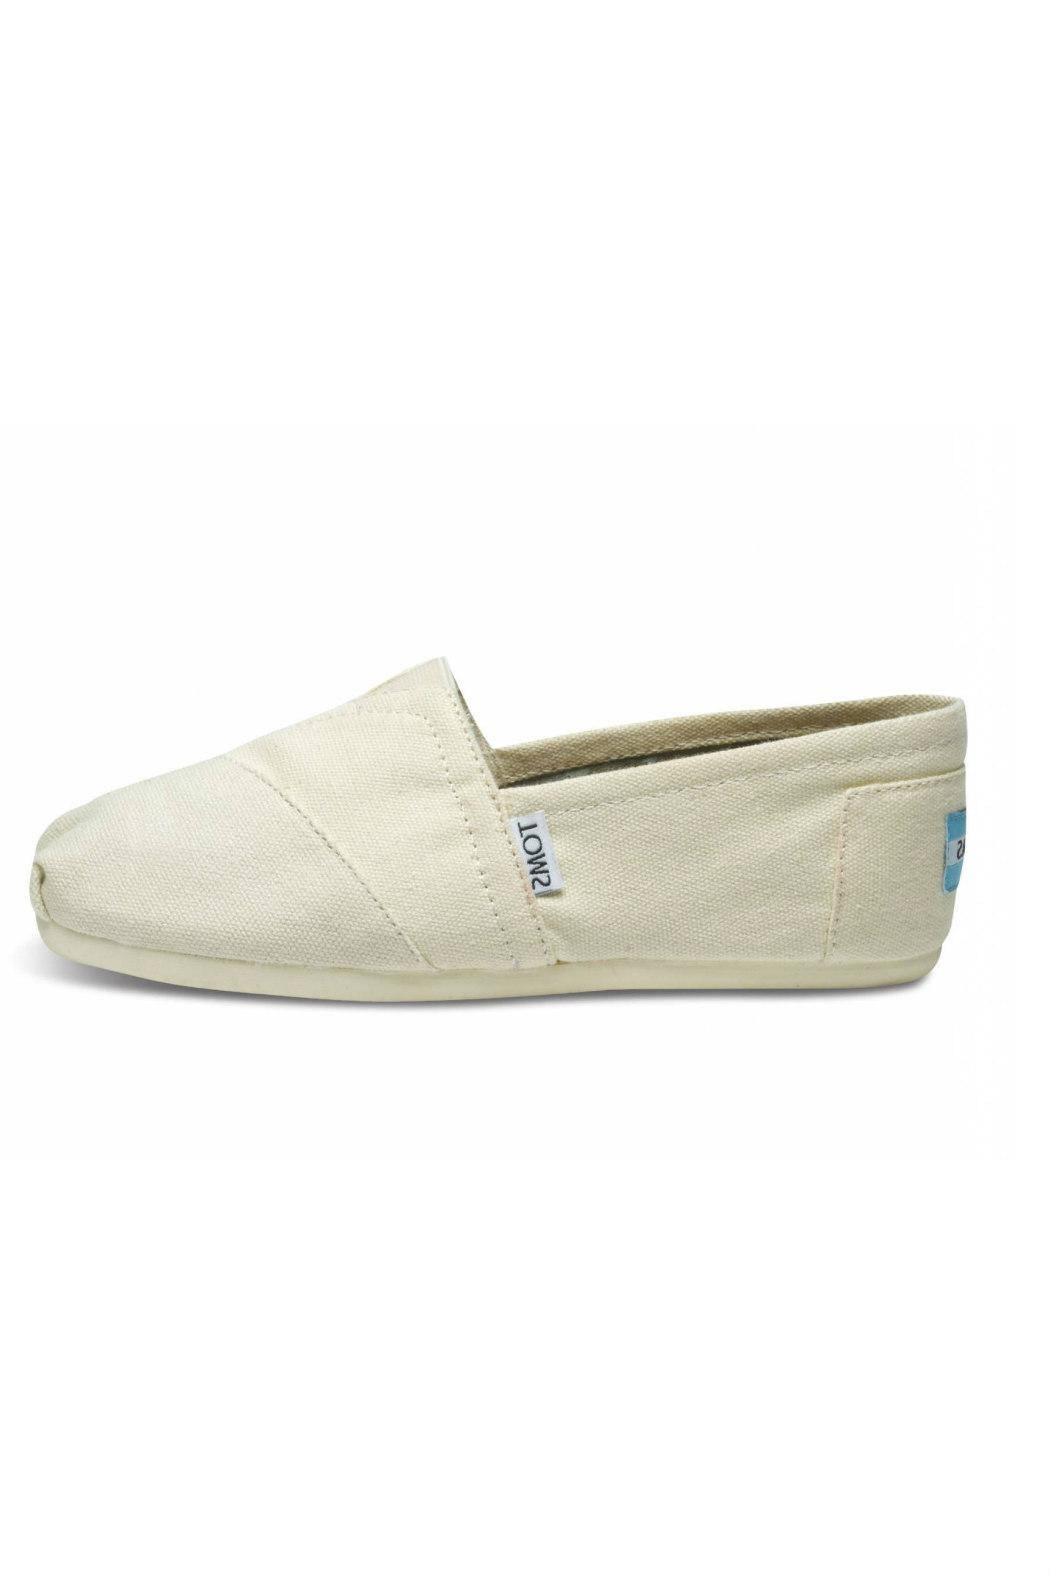 TOMS Natural Canvas Alpergata Shoes - Main Image